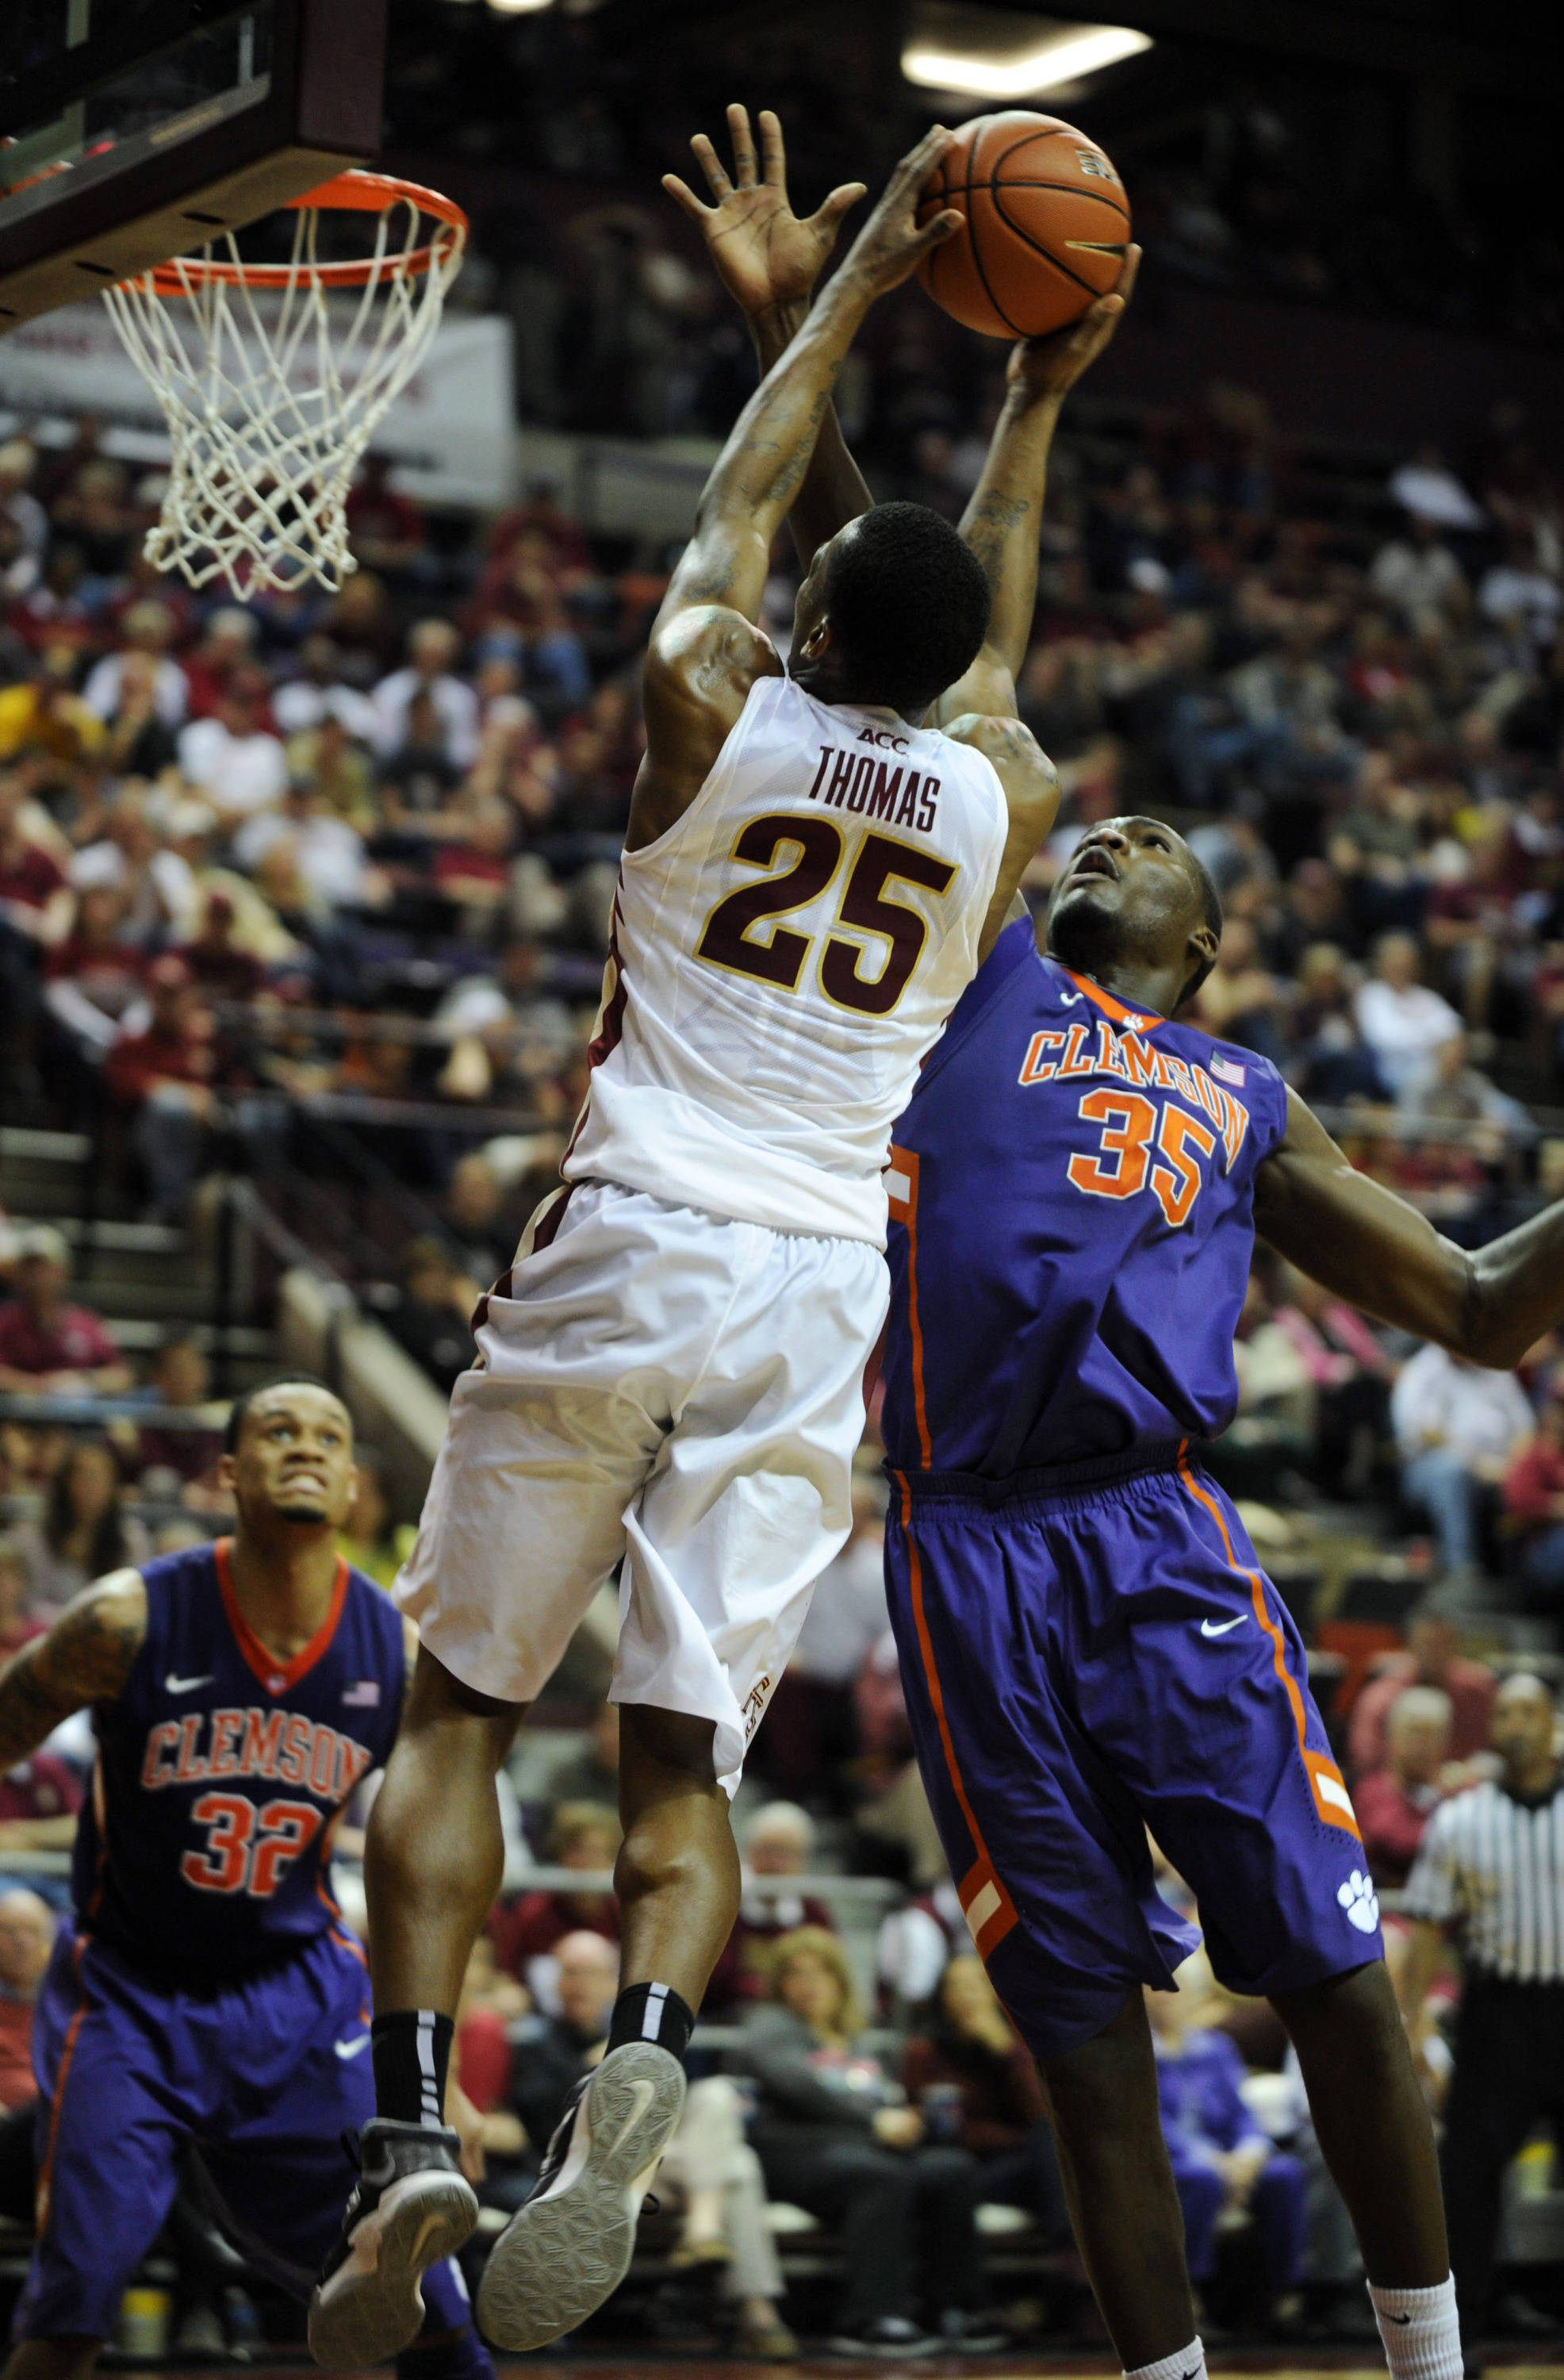 Feb 1, 2014; Tallahassee, FL, USA; Clemson Tigers center Landry Nnoko (35) fouls Florida State Seminoles guard Aaron Thomas (25) during the second half at the Donald L. Tucker Center. Mandatory Credit: Melina Vastola-USA TODAY Sports